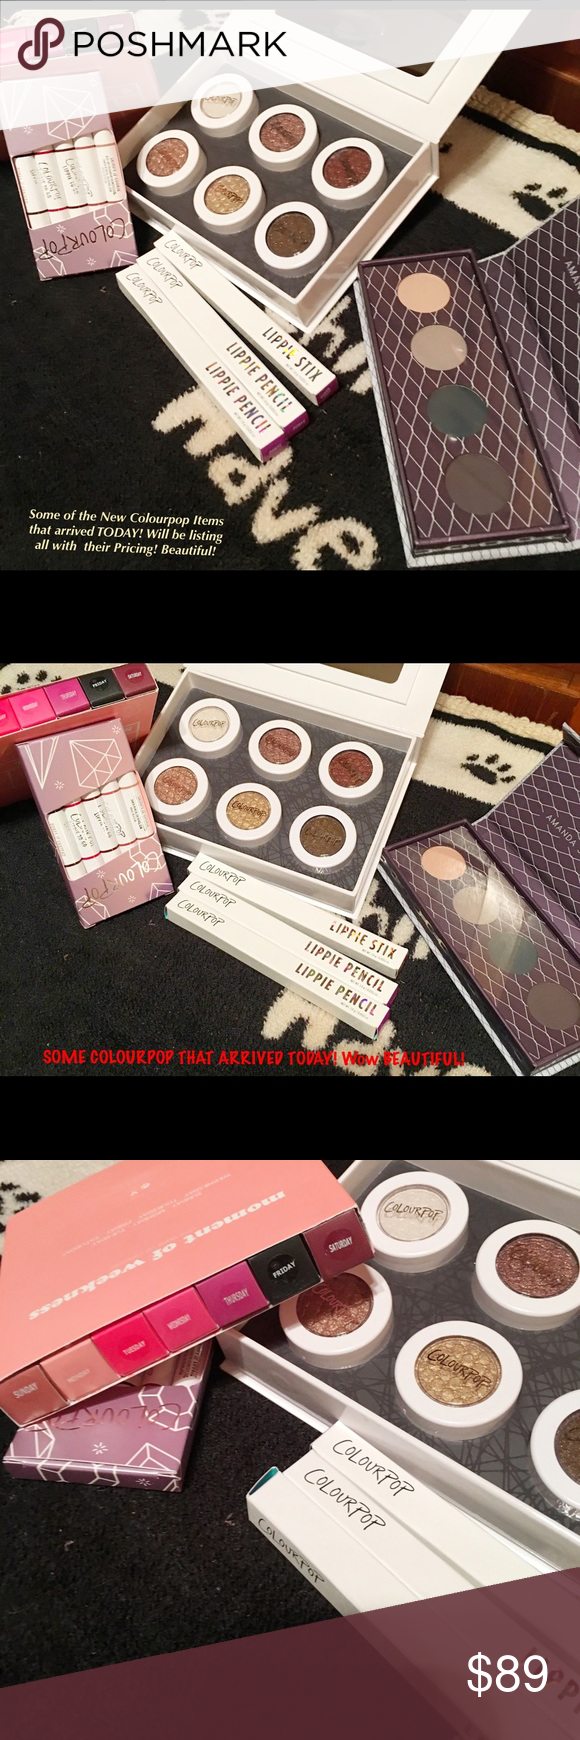 💋Nip/COLOURPOP SHIPMENT ARRIVED! ✔OUT ALL OF IT! 💋💞⭐Nip/Colourpop Cosmetic Shipment Arrived! WOW SOME BEAUTIFUL SHADOW Shades/Lippie Stix/Ultra Mattes for every day of the Week! I will be pricing & listing separately/but if you see something you want a closer look at?? Just message @toryshop💞 Colourpop Makeup Eyeshadow